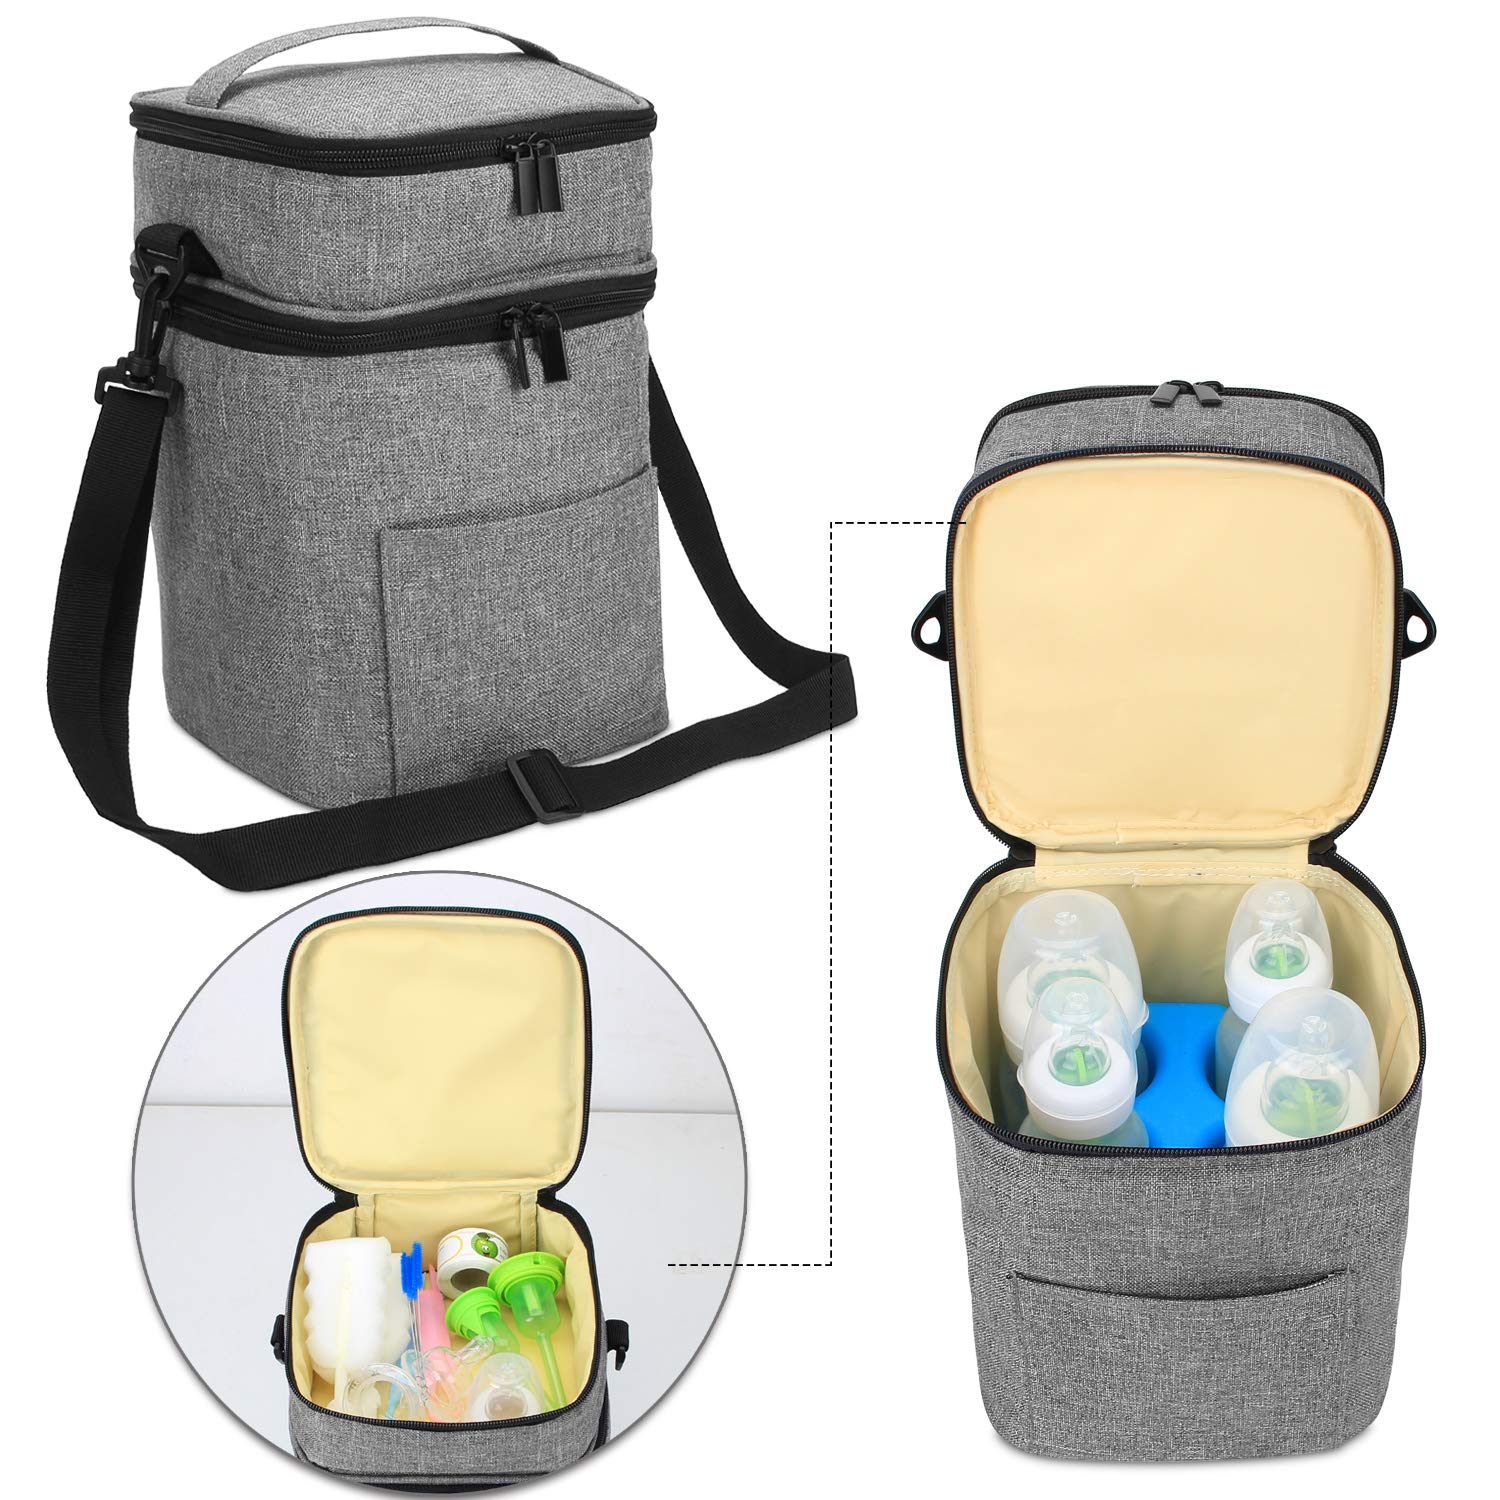 Luxja Double-Layer Breastmilk Cooler Bag (Fits 4 Bottles, Up to 9 Ounce), Breastmilk Cooler for Breastmilk Bottles and Accessories (Bag Only), Gray by LUXJA